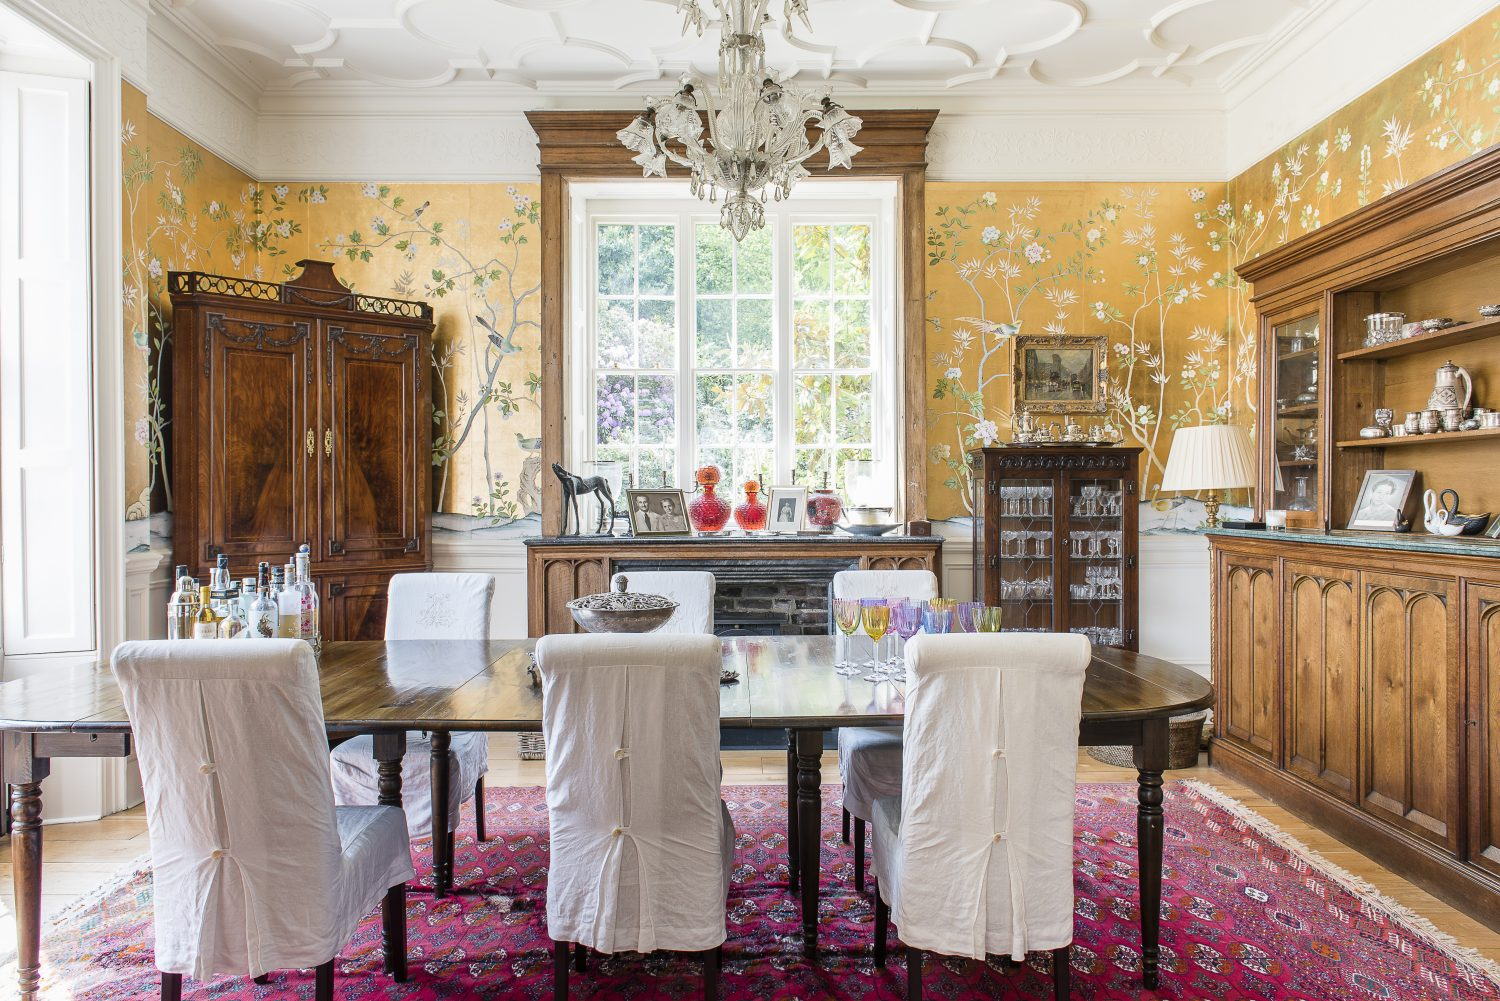 The dining room was once a snooker room for RAF officers billeted in the house during World War II. The wallpaper is by De Gournay. The coloured vases are from Venice, a special place for Chris and Lillie, which inspired one of the Lavender & Lillie fragrances